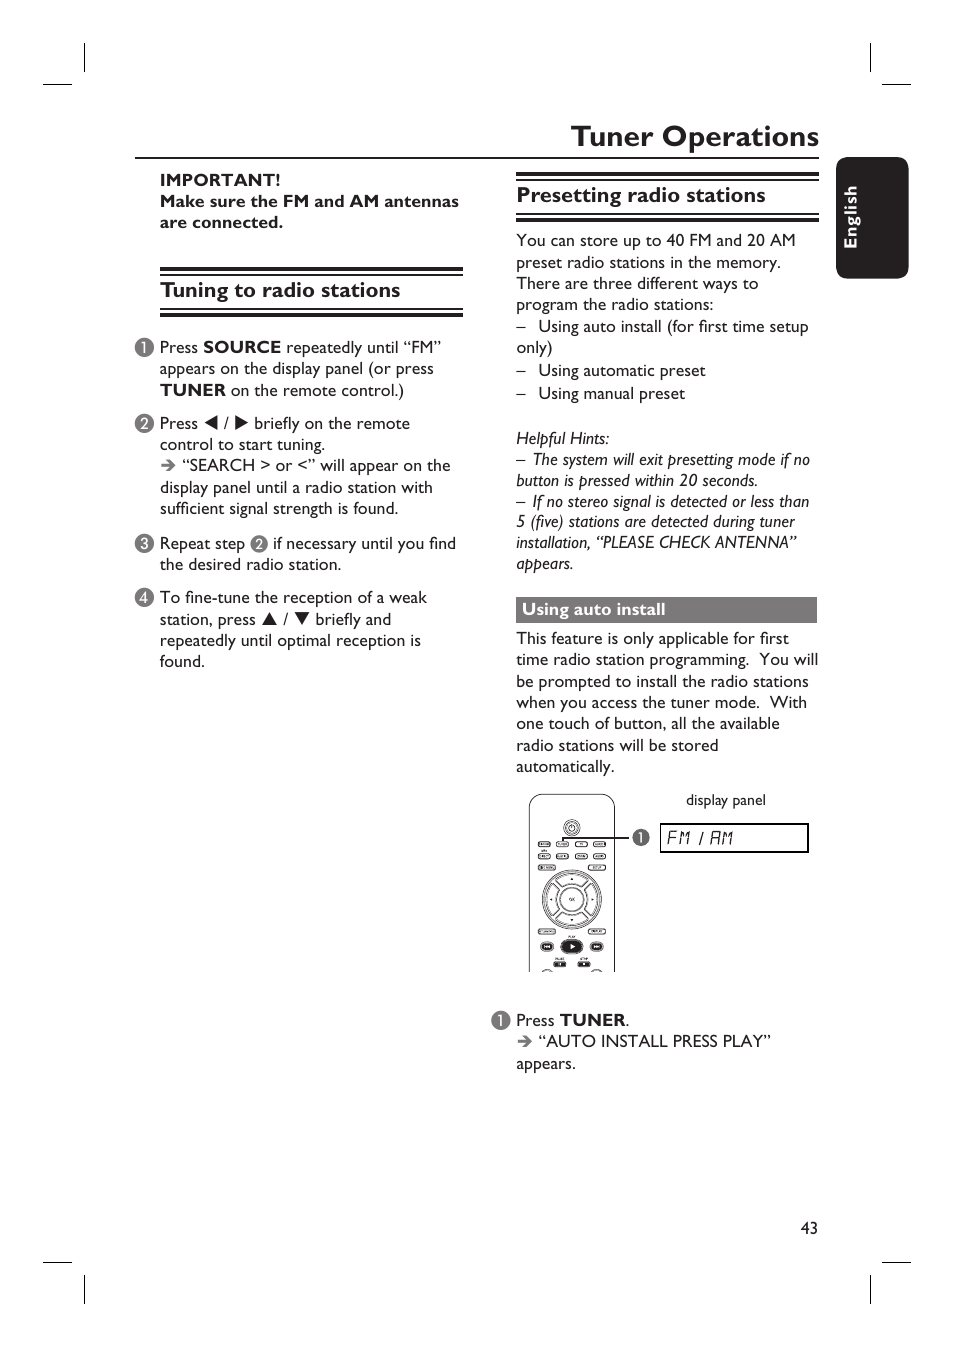 tuner operations philips hts6500 37 user manual page 43 55 rh manualsdir com Philips User Guides Philips Flat TV Manual